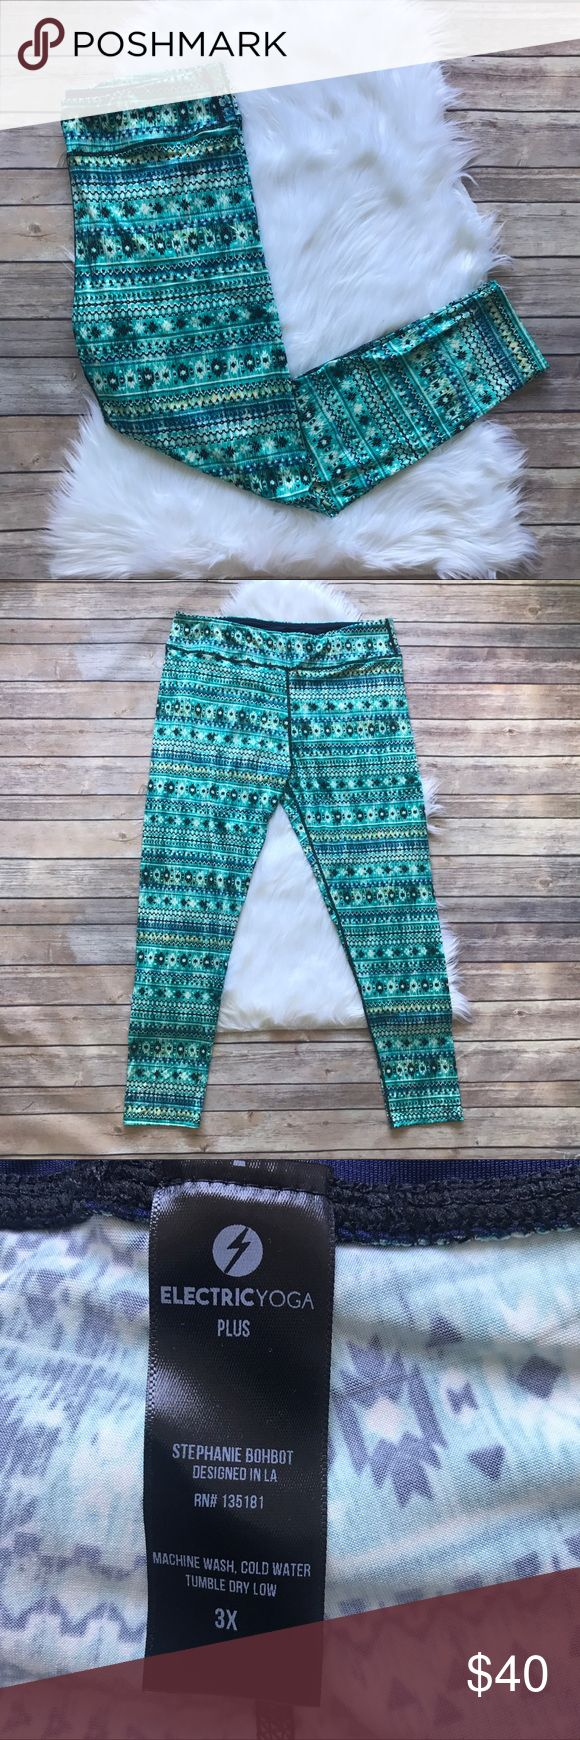 Electric Yoga Tribal Print Leggings Bold tribal print leggings by Electric Yoga. Easy, comfortable, and breathable. Brand new, comes without tags. 96% polyester 4% spandex.   ⭐️no trades⭐️  ⭐️I'm open to offers and I ALWAYS send a counteroffer⭐️  ⭐️bundle and save 10% off two or more items⭐️ Electric Yoga Pants Leggings